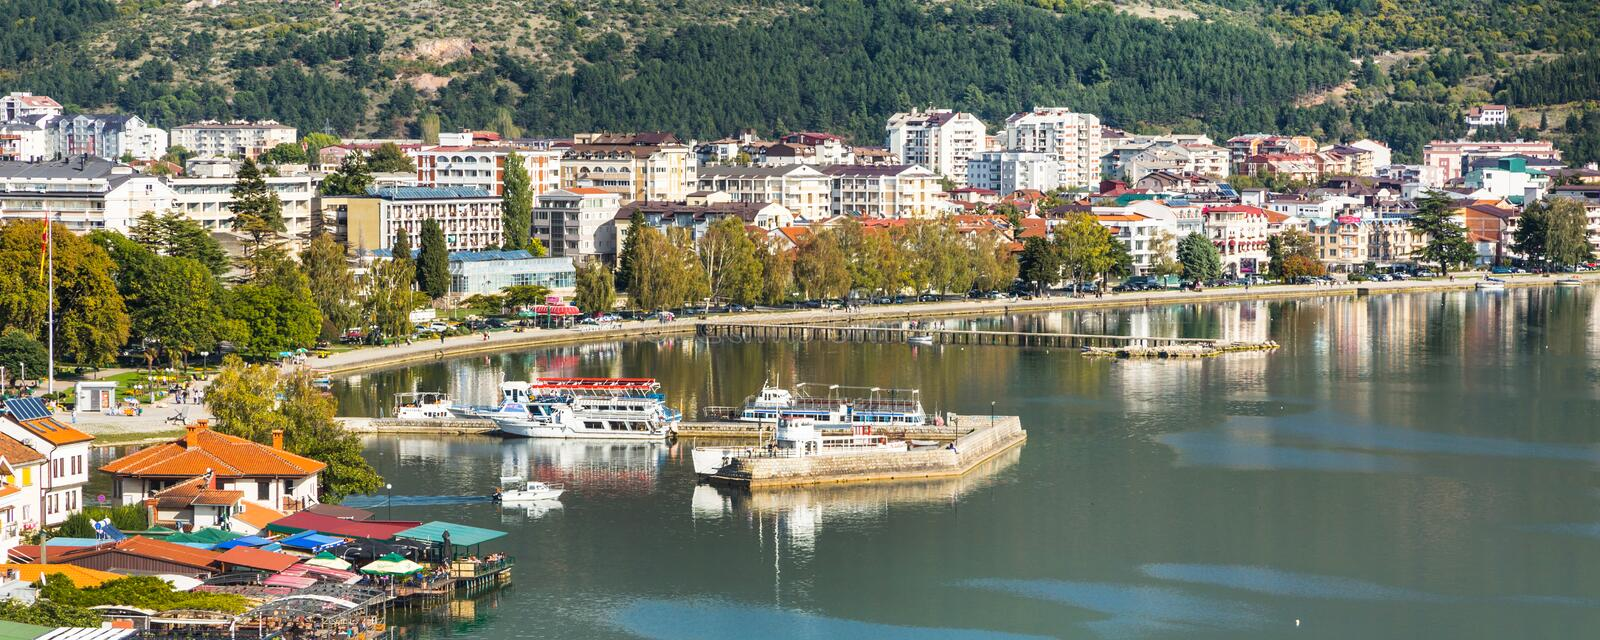 Ohrid panoramic aerial view, Republic of Macedonia royalty free stock photography